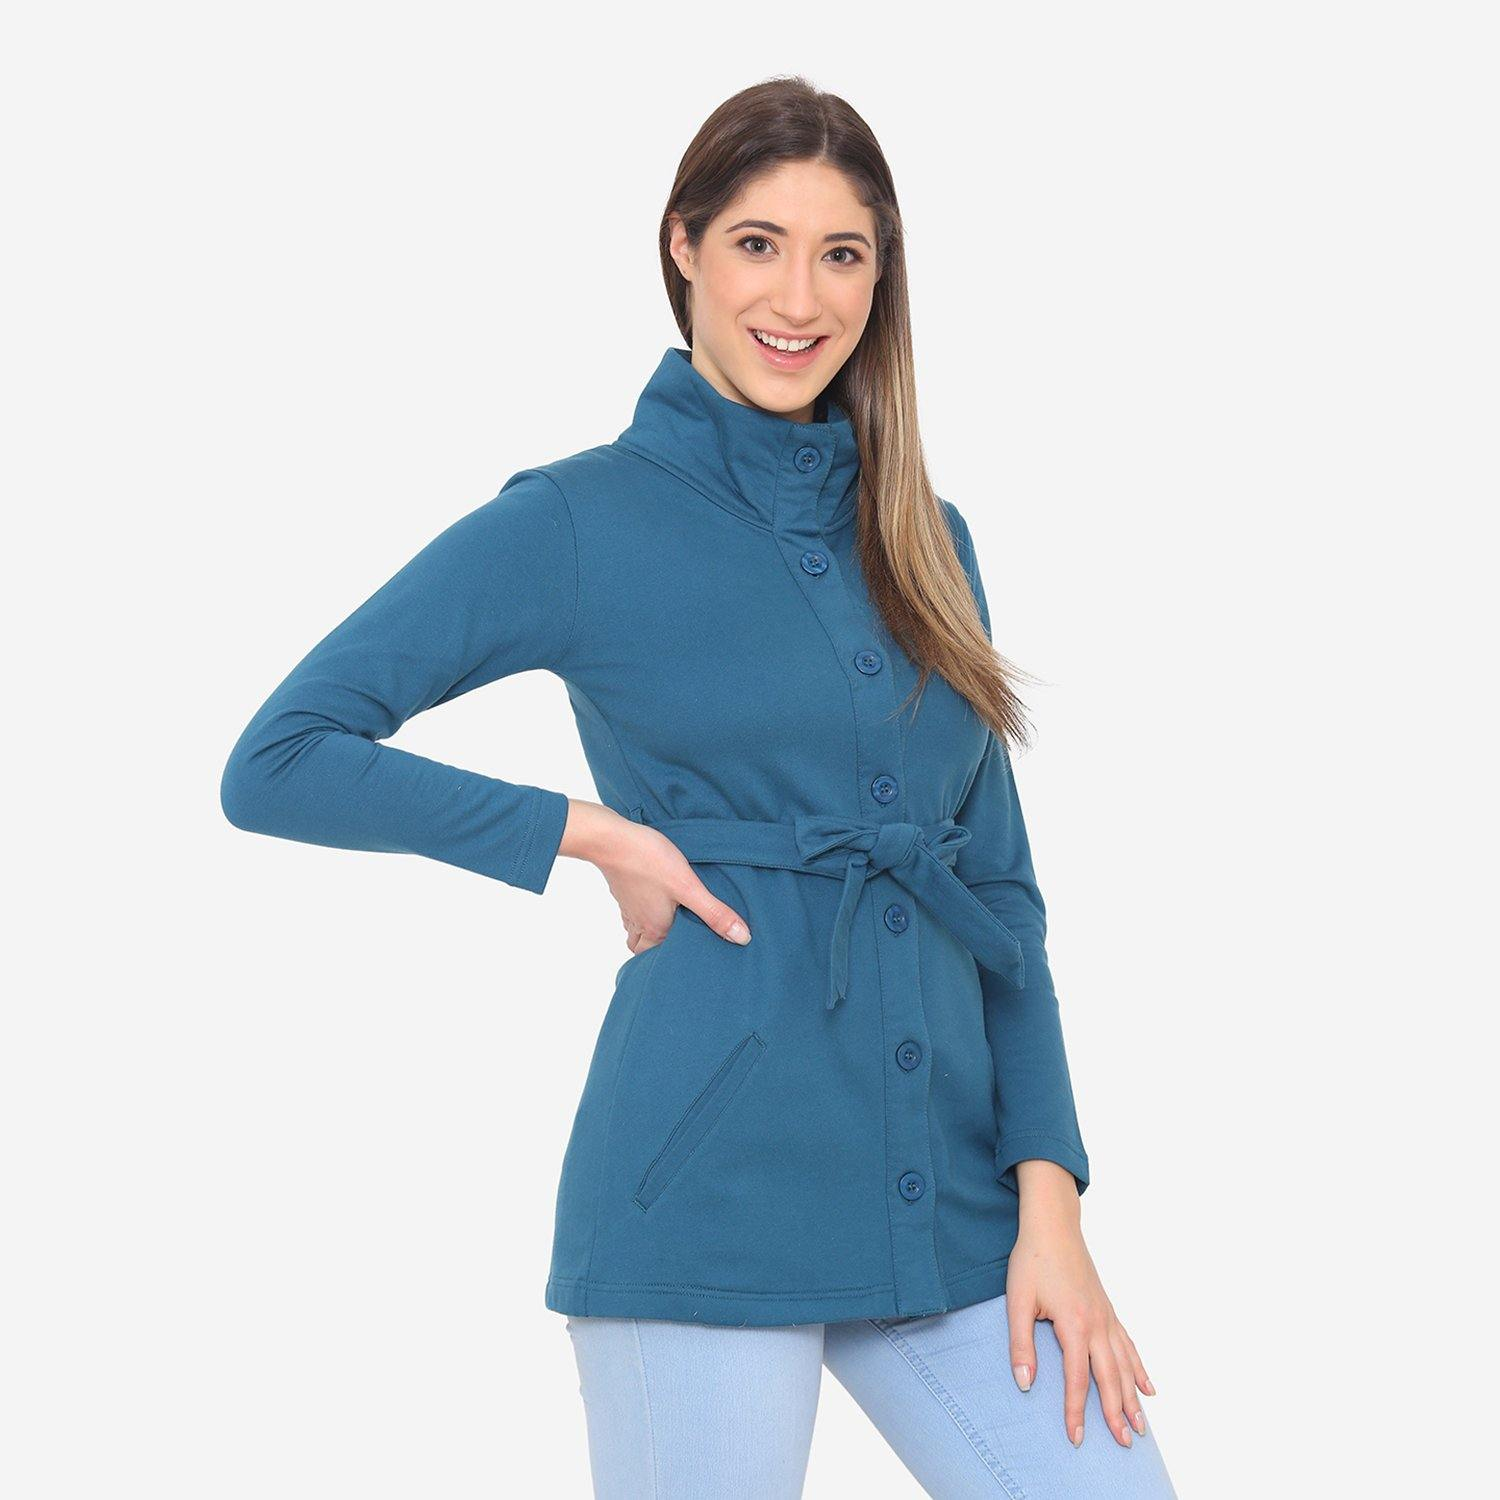 Women's Stylish & Comfy Winter Jacket -Atlantic Deep